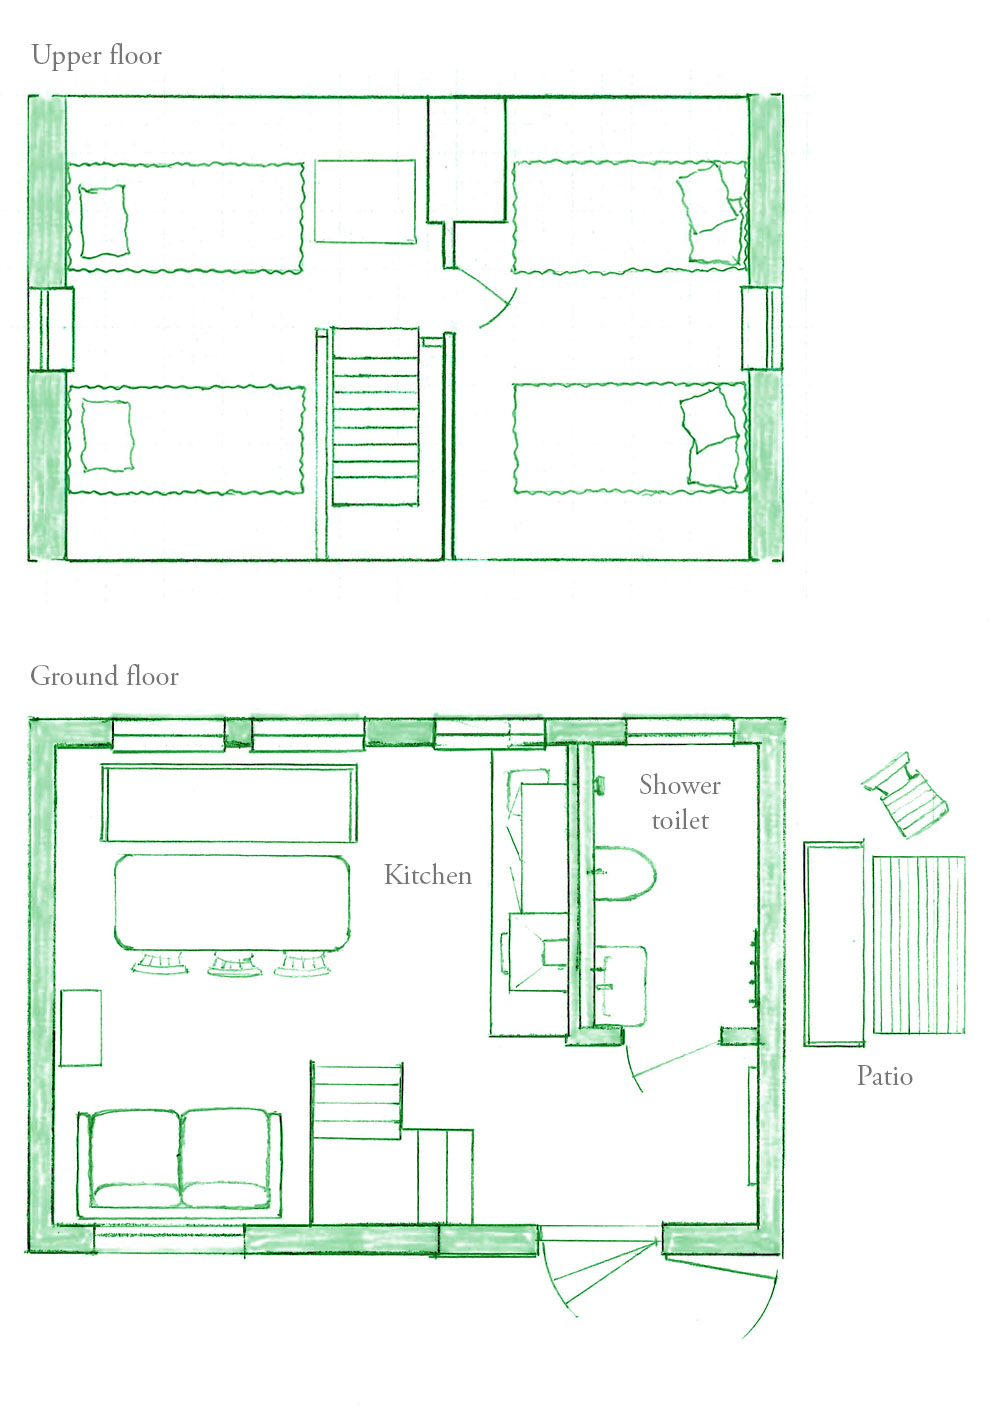 Interior planning for the cottage.